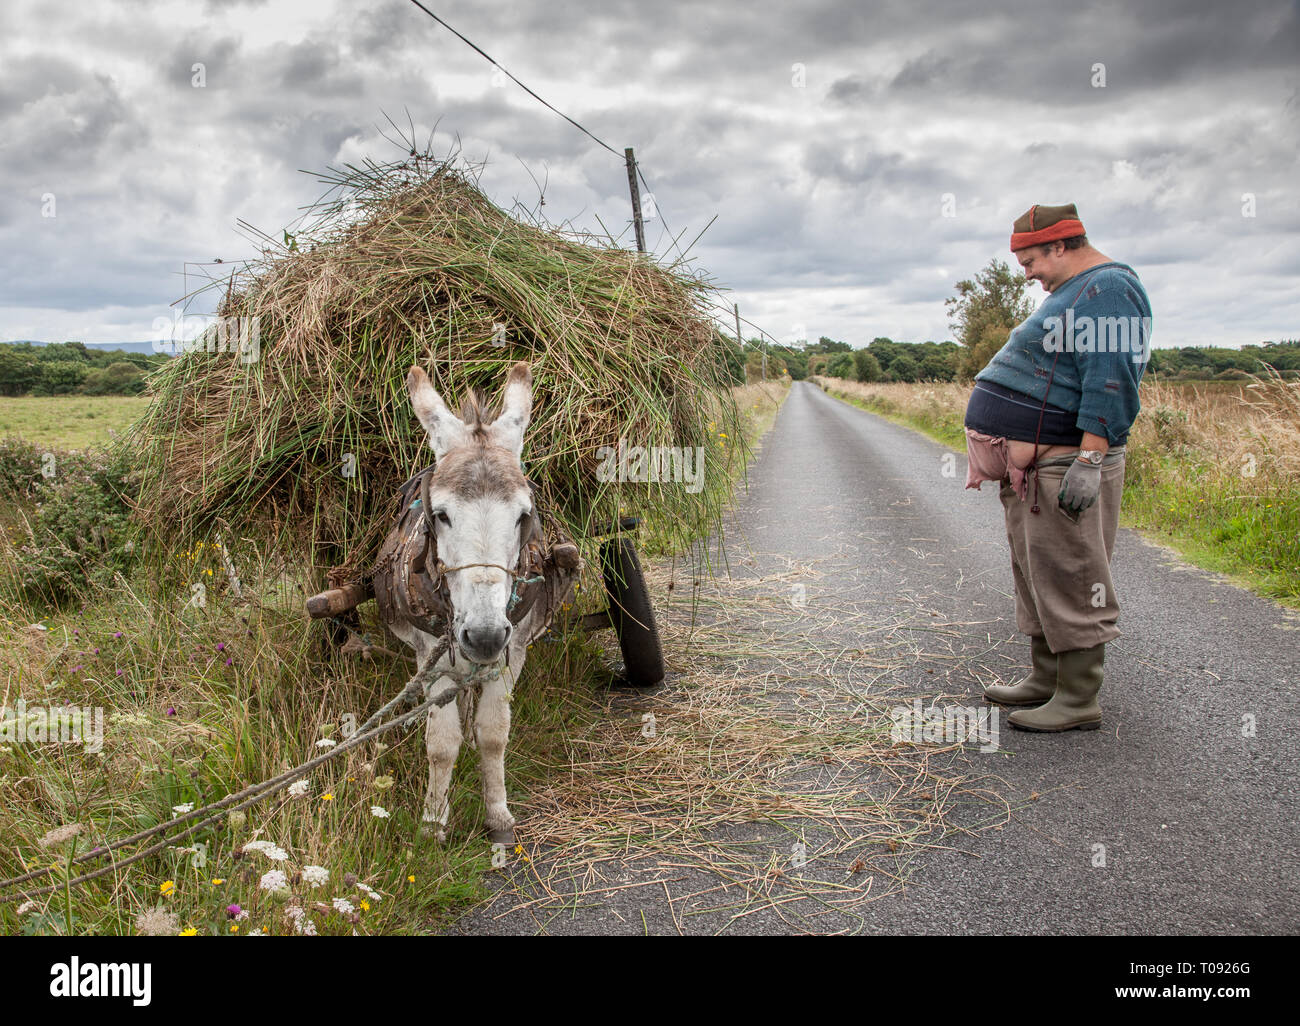 Enniscrone, Sligo, Ireland. 13th August, 2009. A farmer brings home reeds with this Donkey and cart in Enniscrone, Co. Sligo Ireland - Stock Image